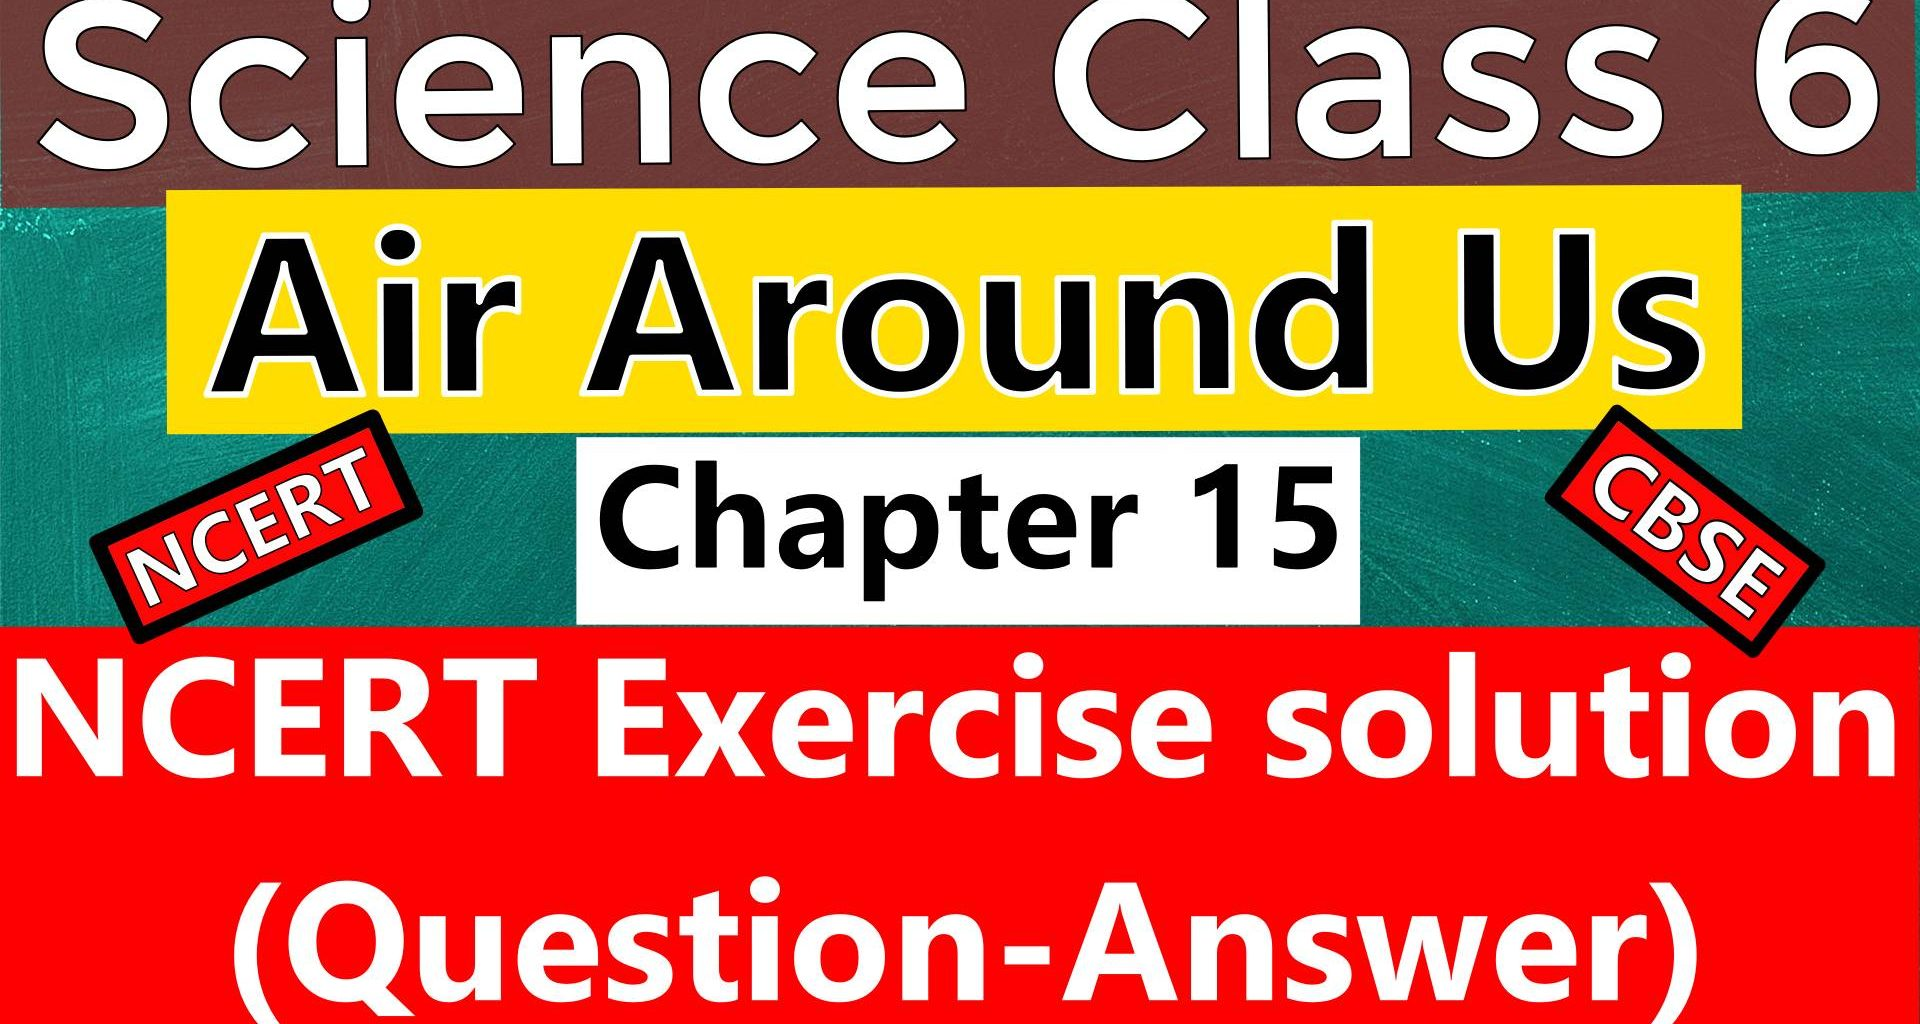 Science class 6 - Chapter 15 -Air Around Us - NCERT Exercise Solutions (Question-Answer)